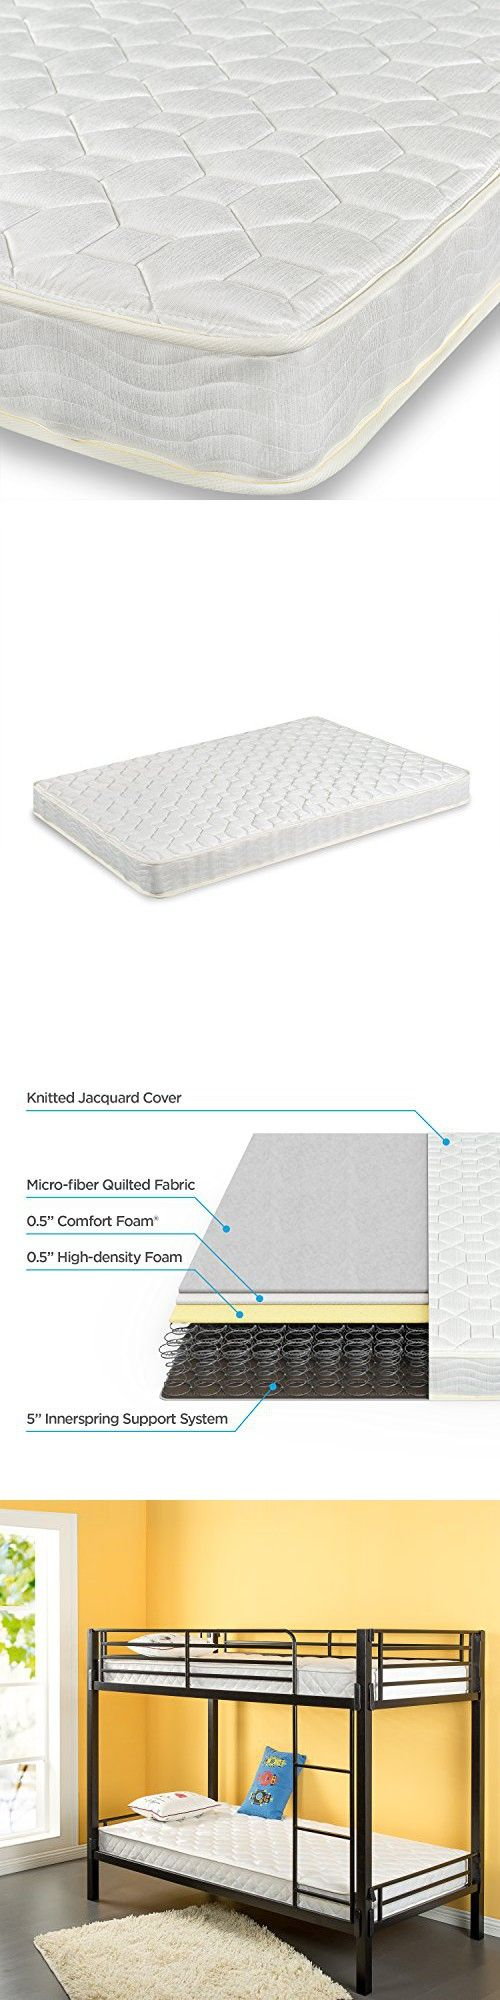 zinus 6 inch spring twin mattress 2 pack perfect for bunk beds